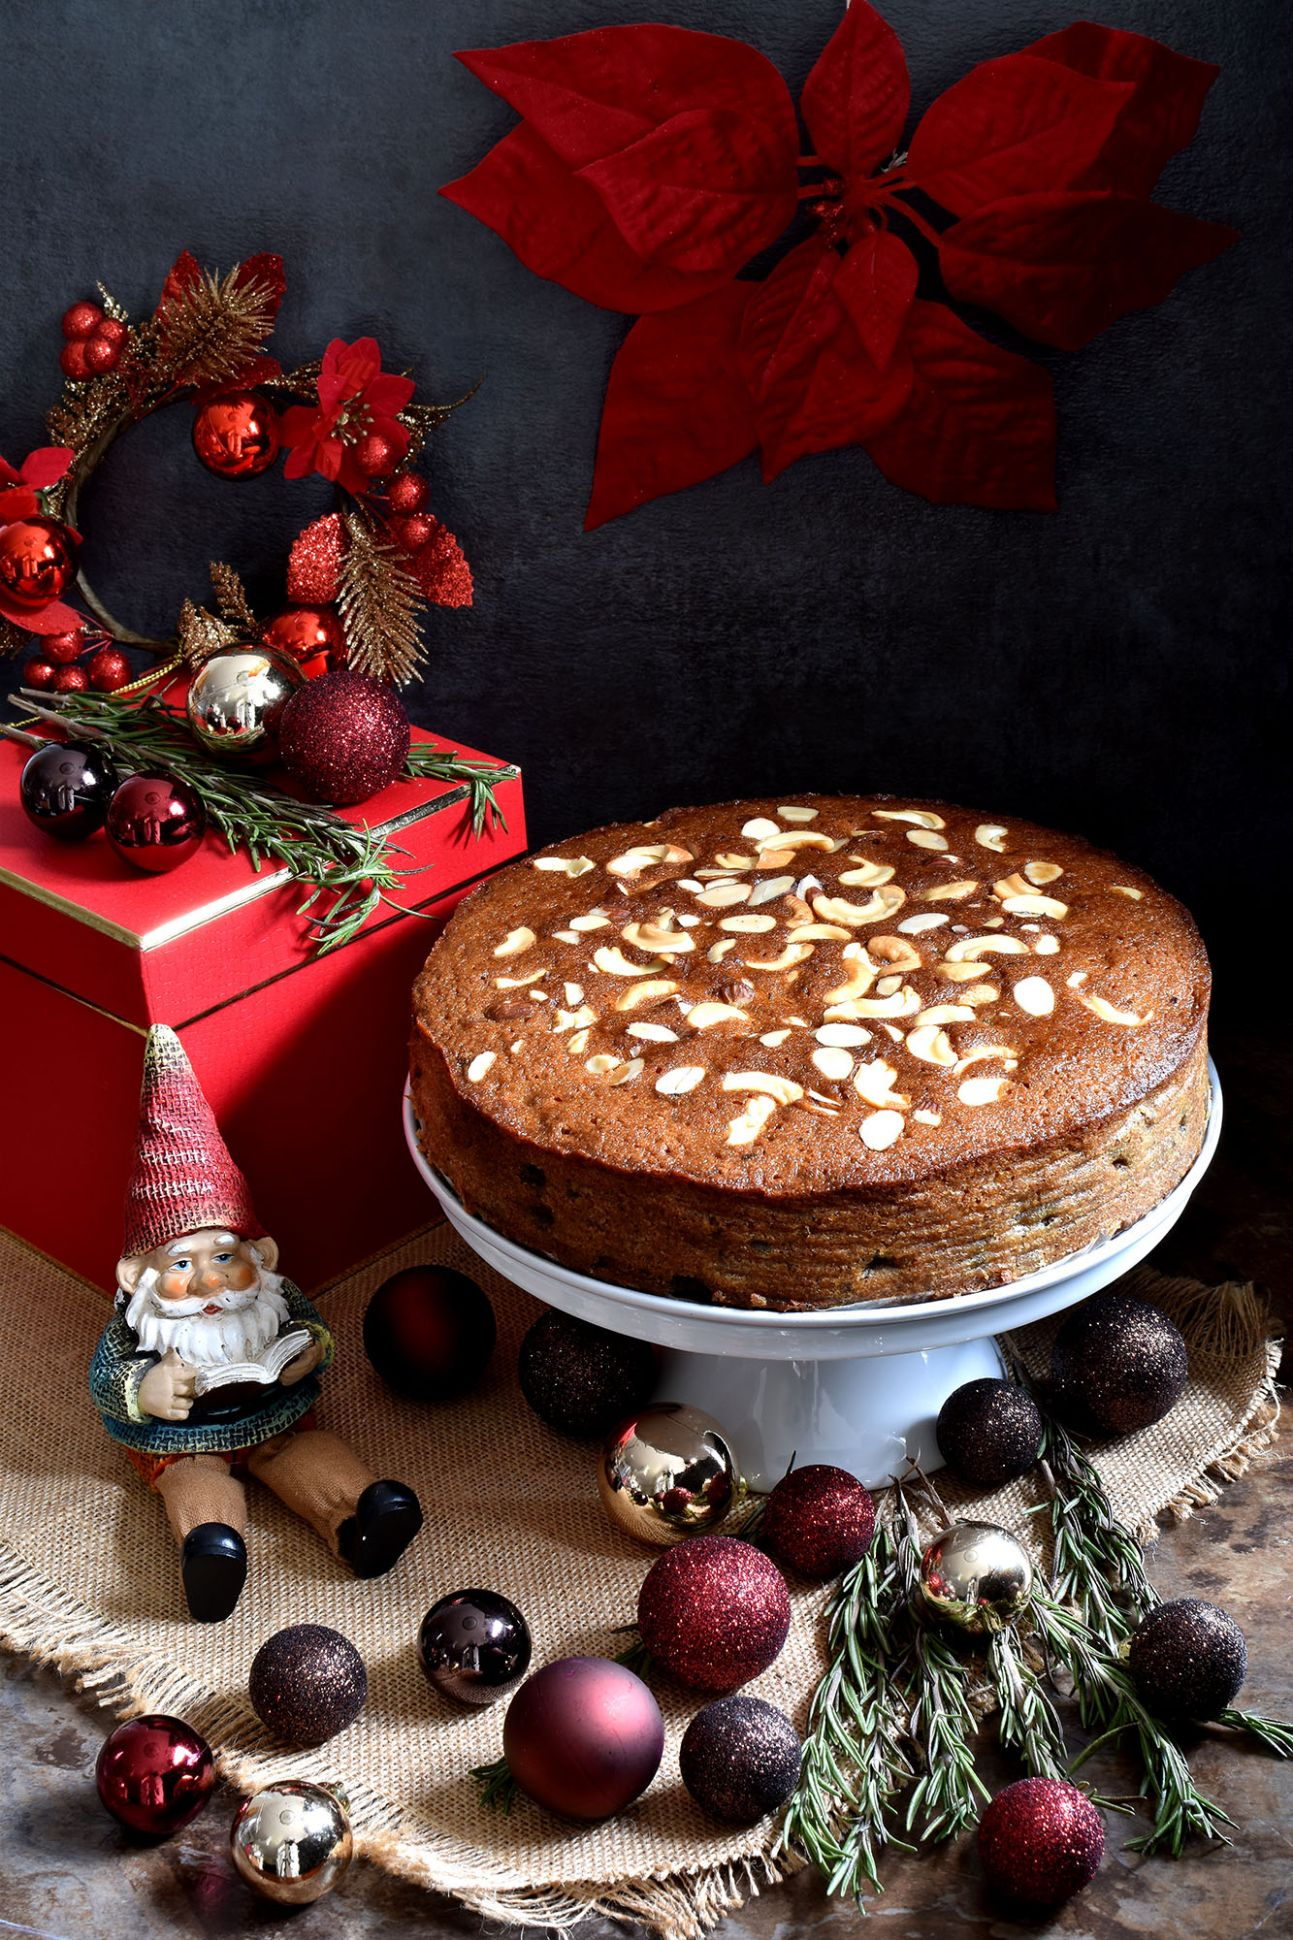 Christmas Fruit Cake (Non Alcoholic) - Recipes Using Xmas Cake